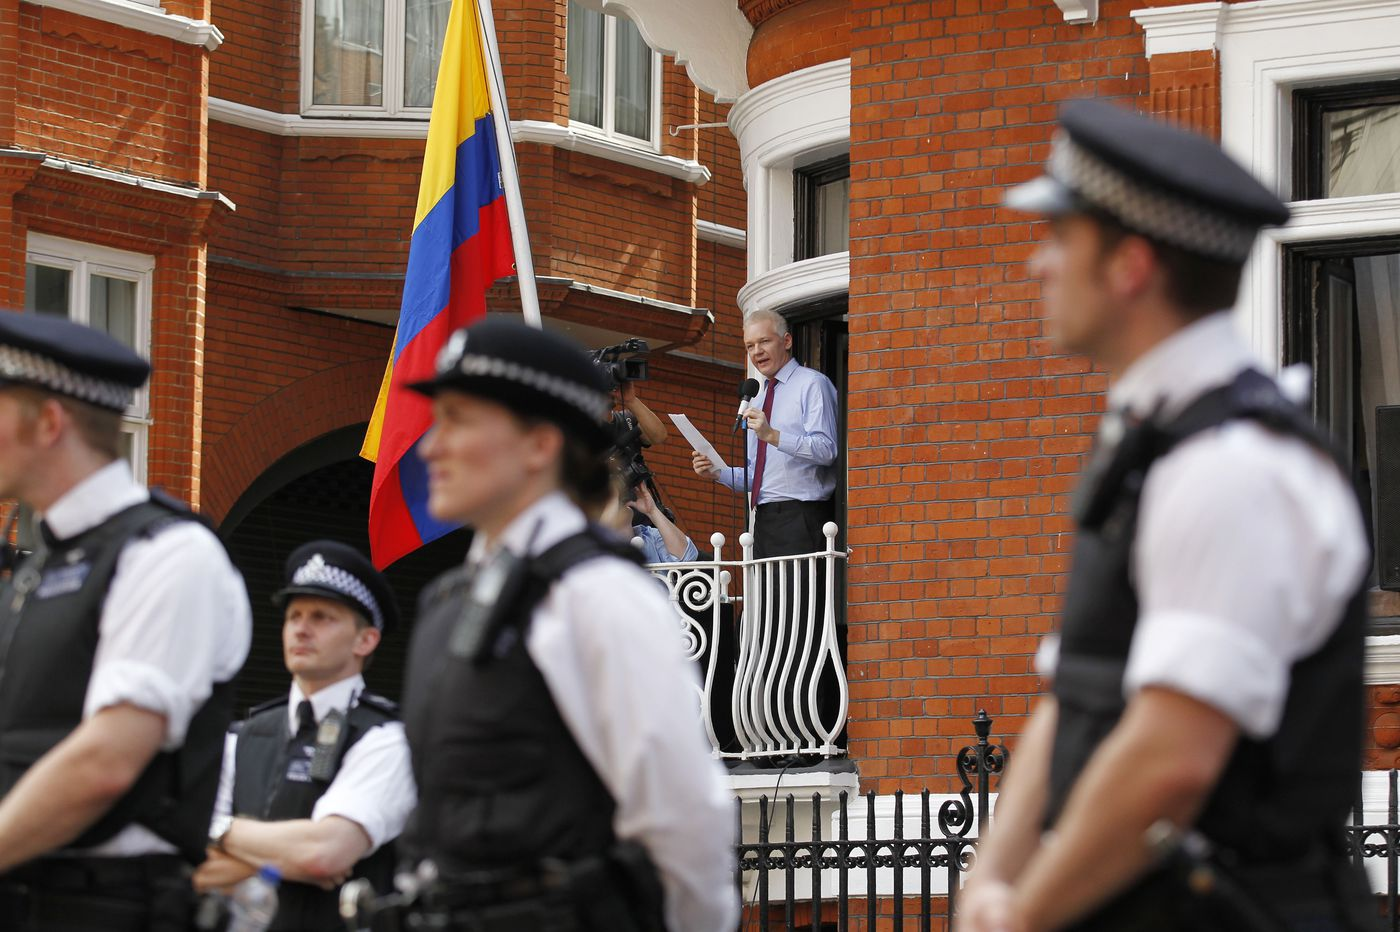 Julian Assange, expelled from his embassy perch, will fight extradition from jail